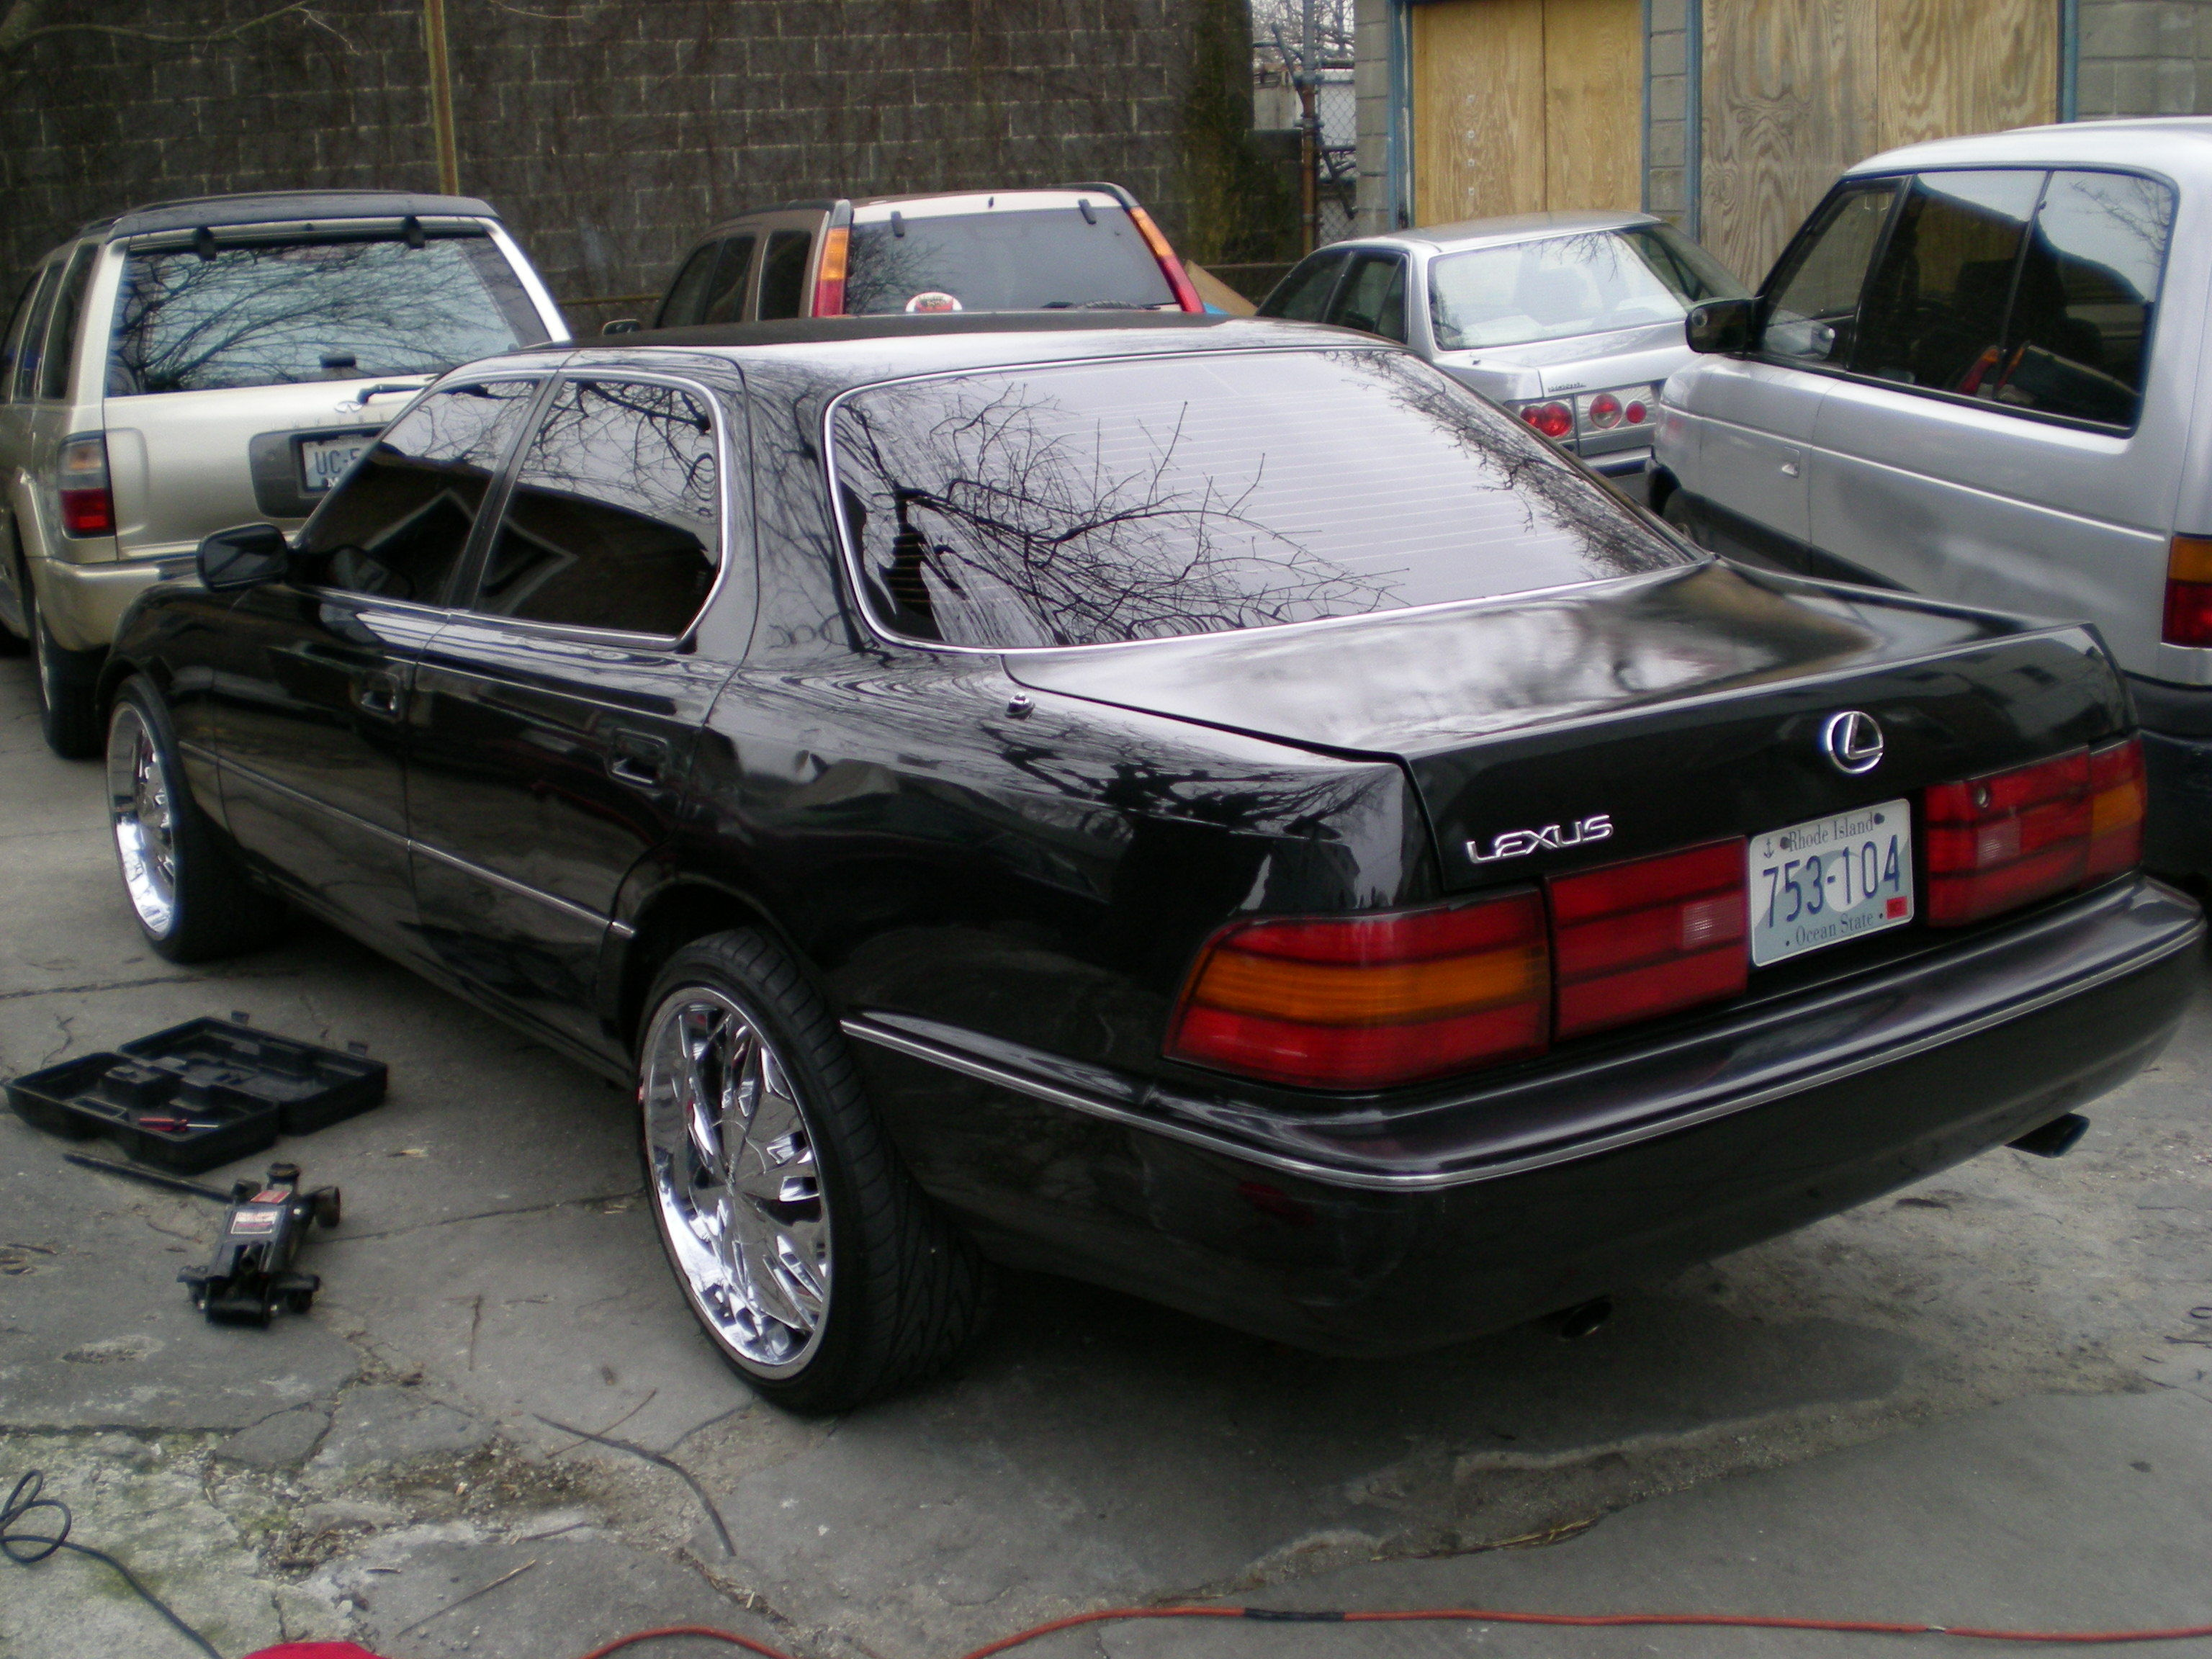 Wondrous Johnny401 1991 Lexus Ls Specs Photos Modification Info At Pabps2019 Chair Design Images Pabps2019Com